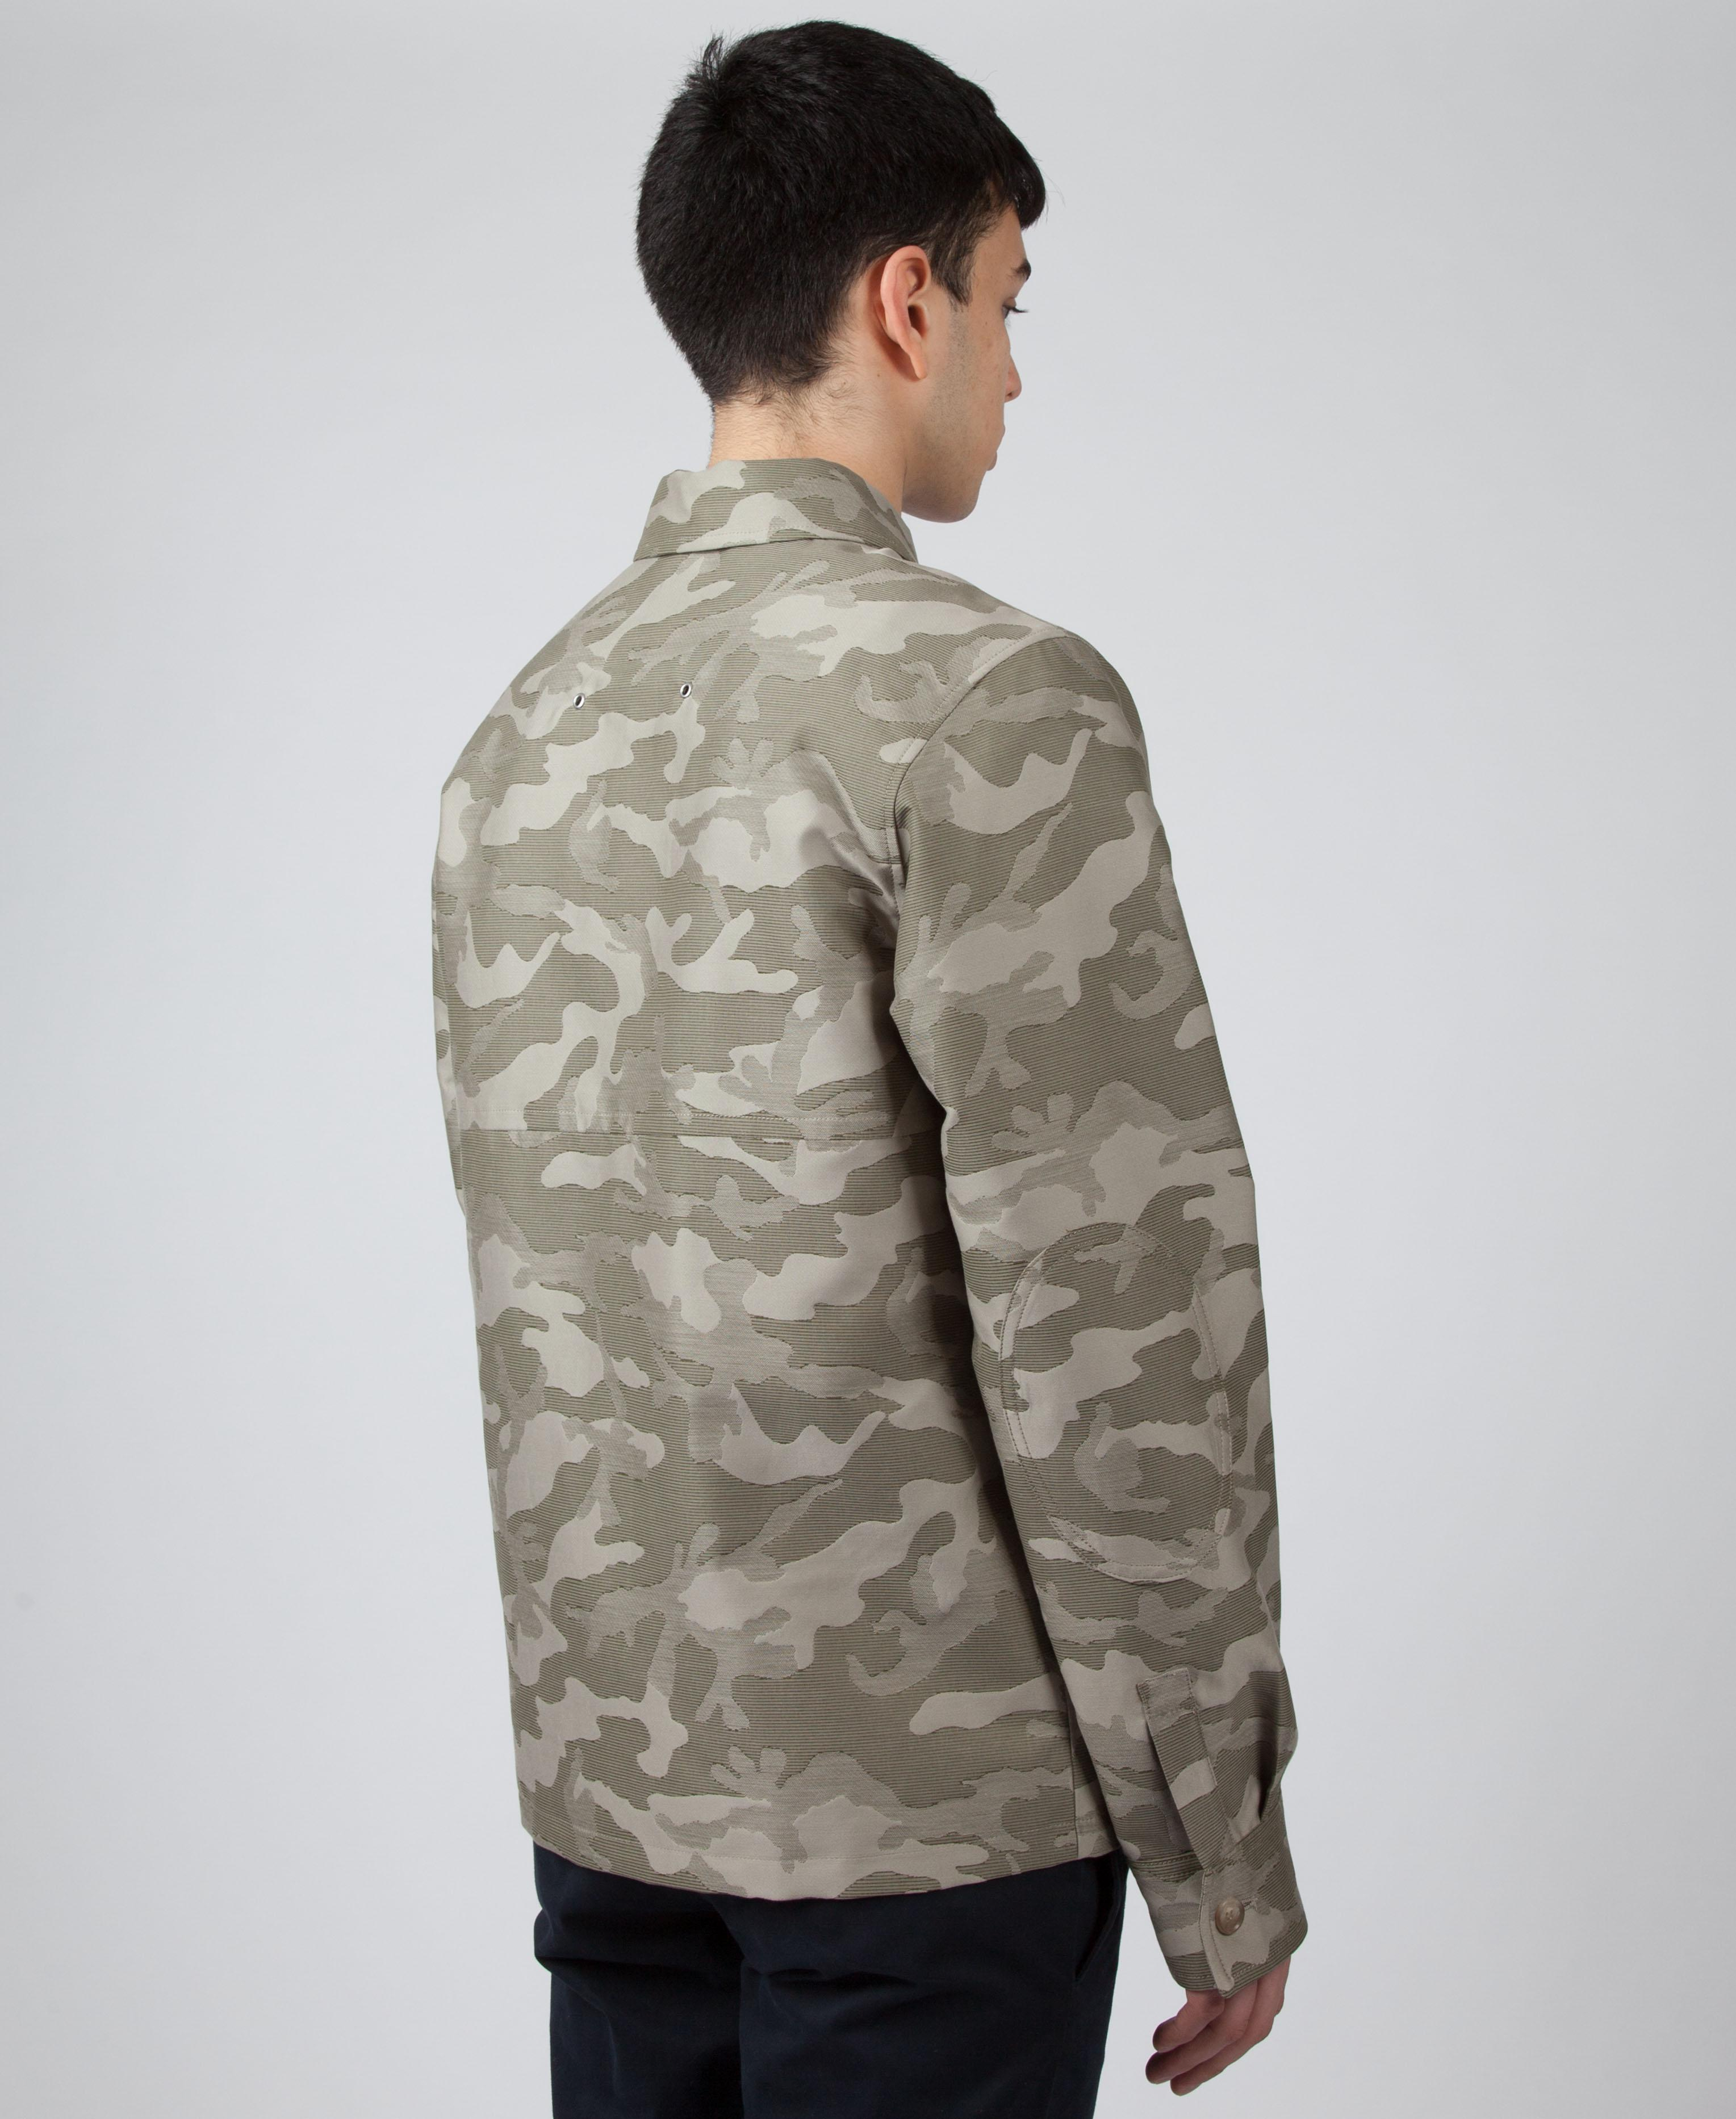 7fee374a4f4ee A.P.C. Crocket Army Jacket for Men - Lyst